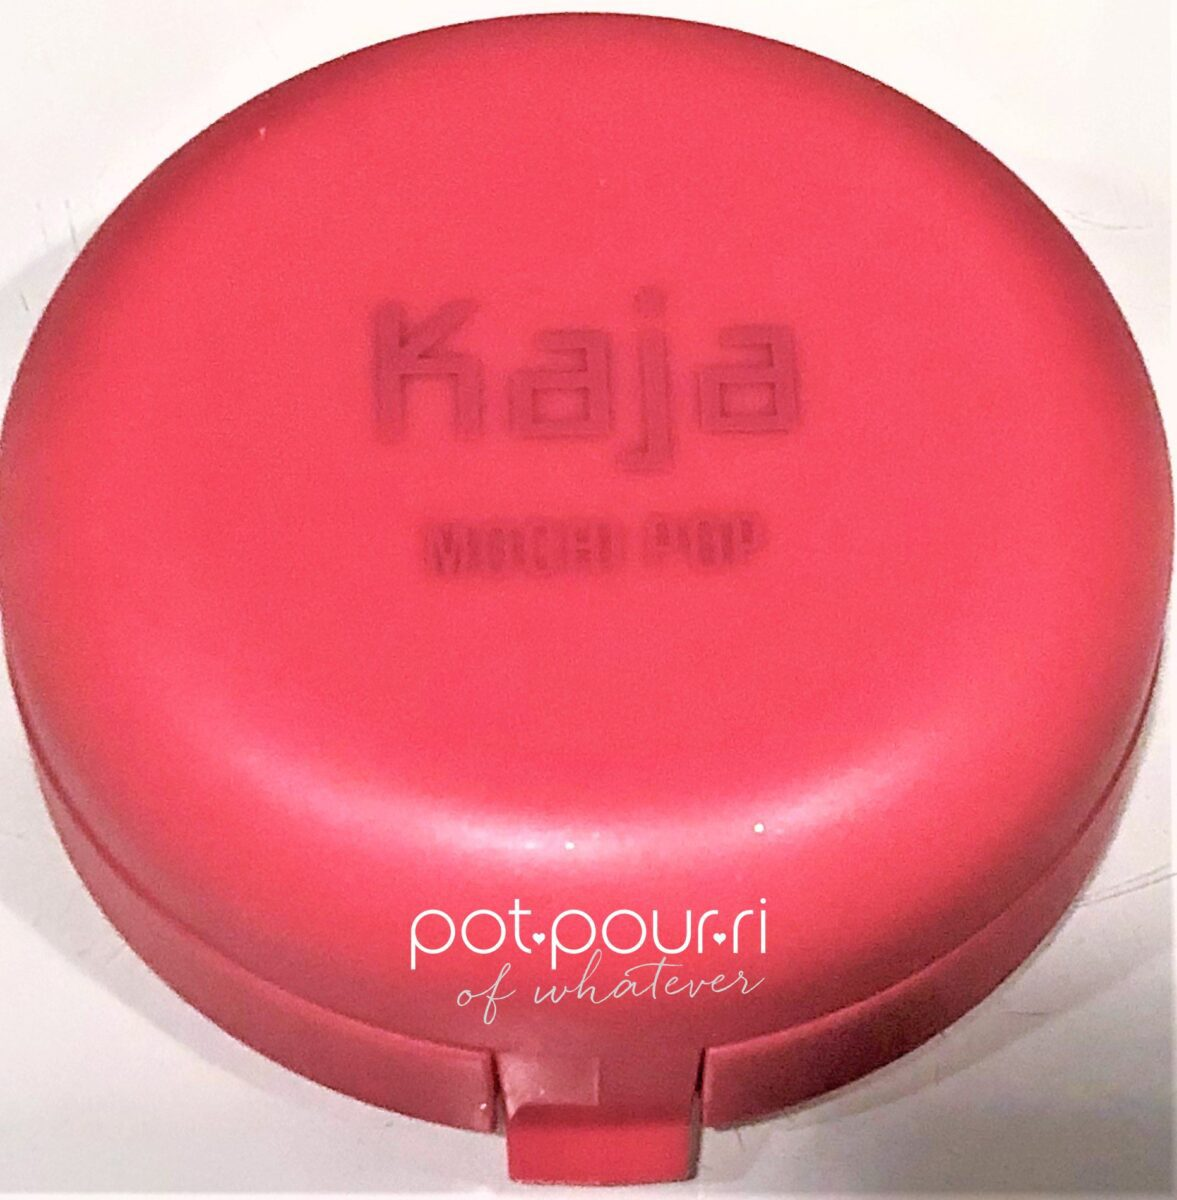 KAJA MOCHI POP BOUNCY BLENDABLE BLUSH